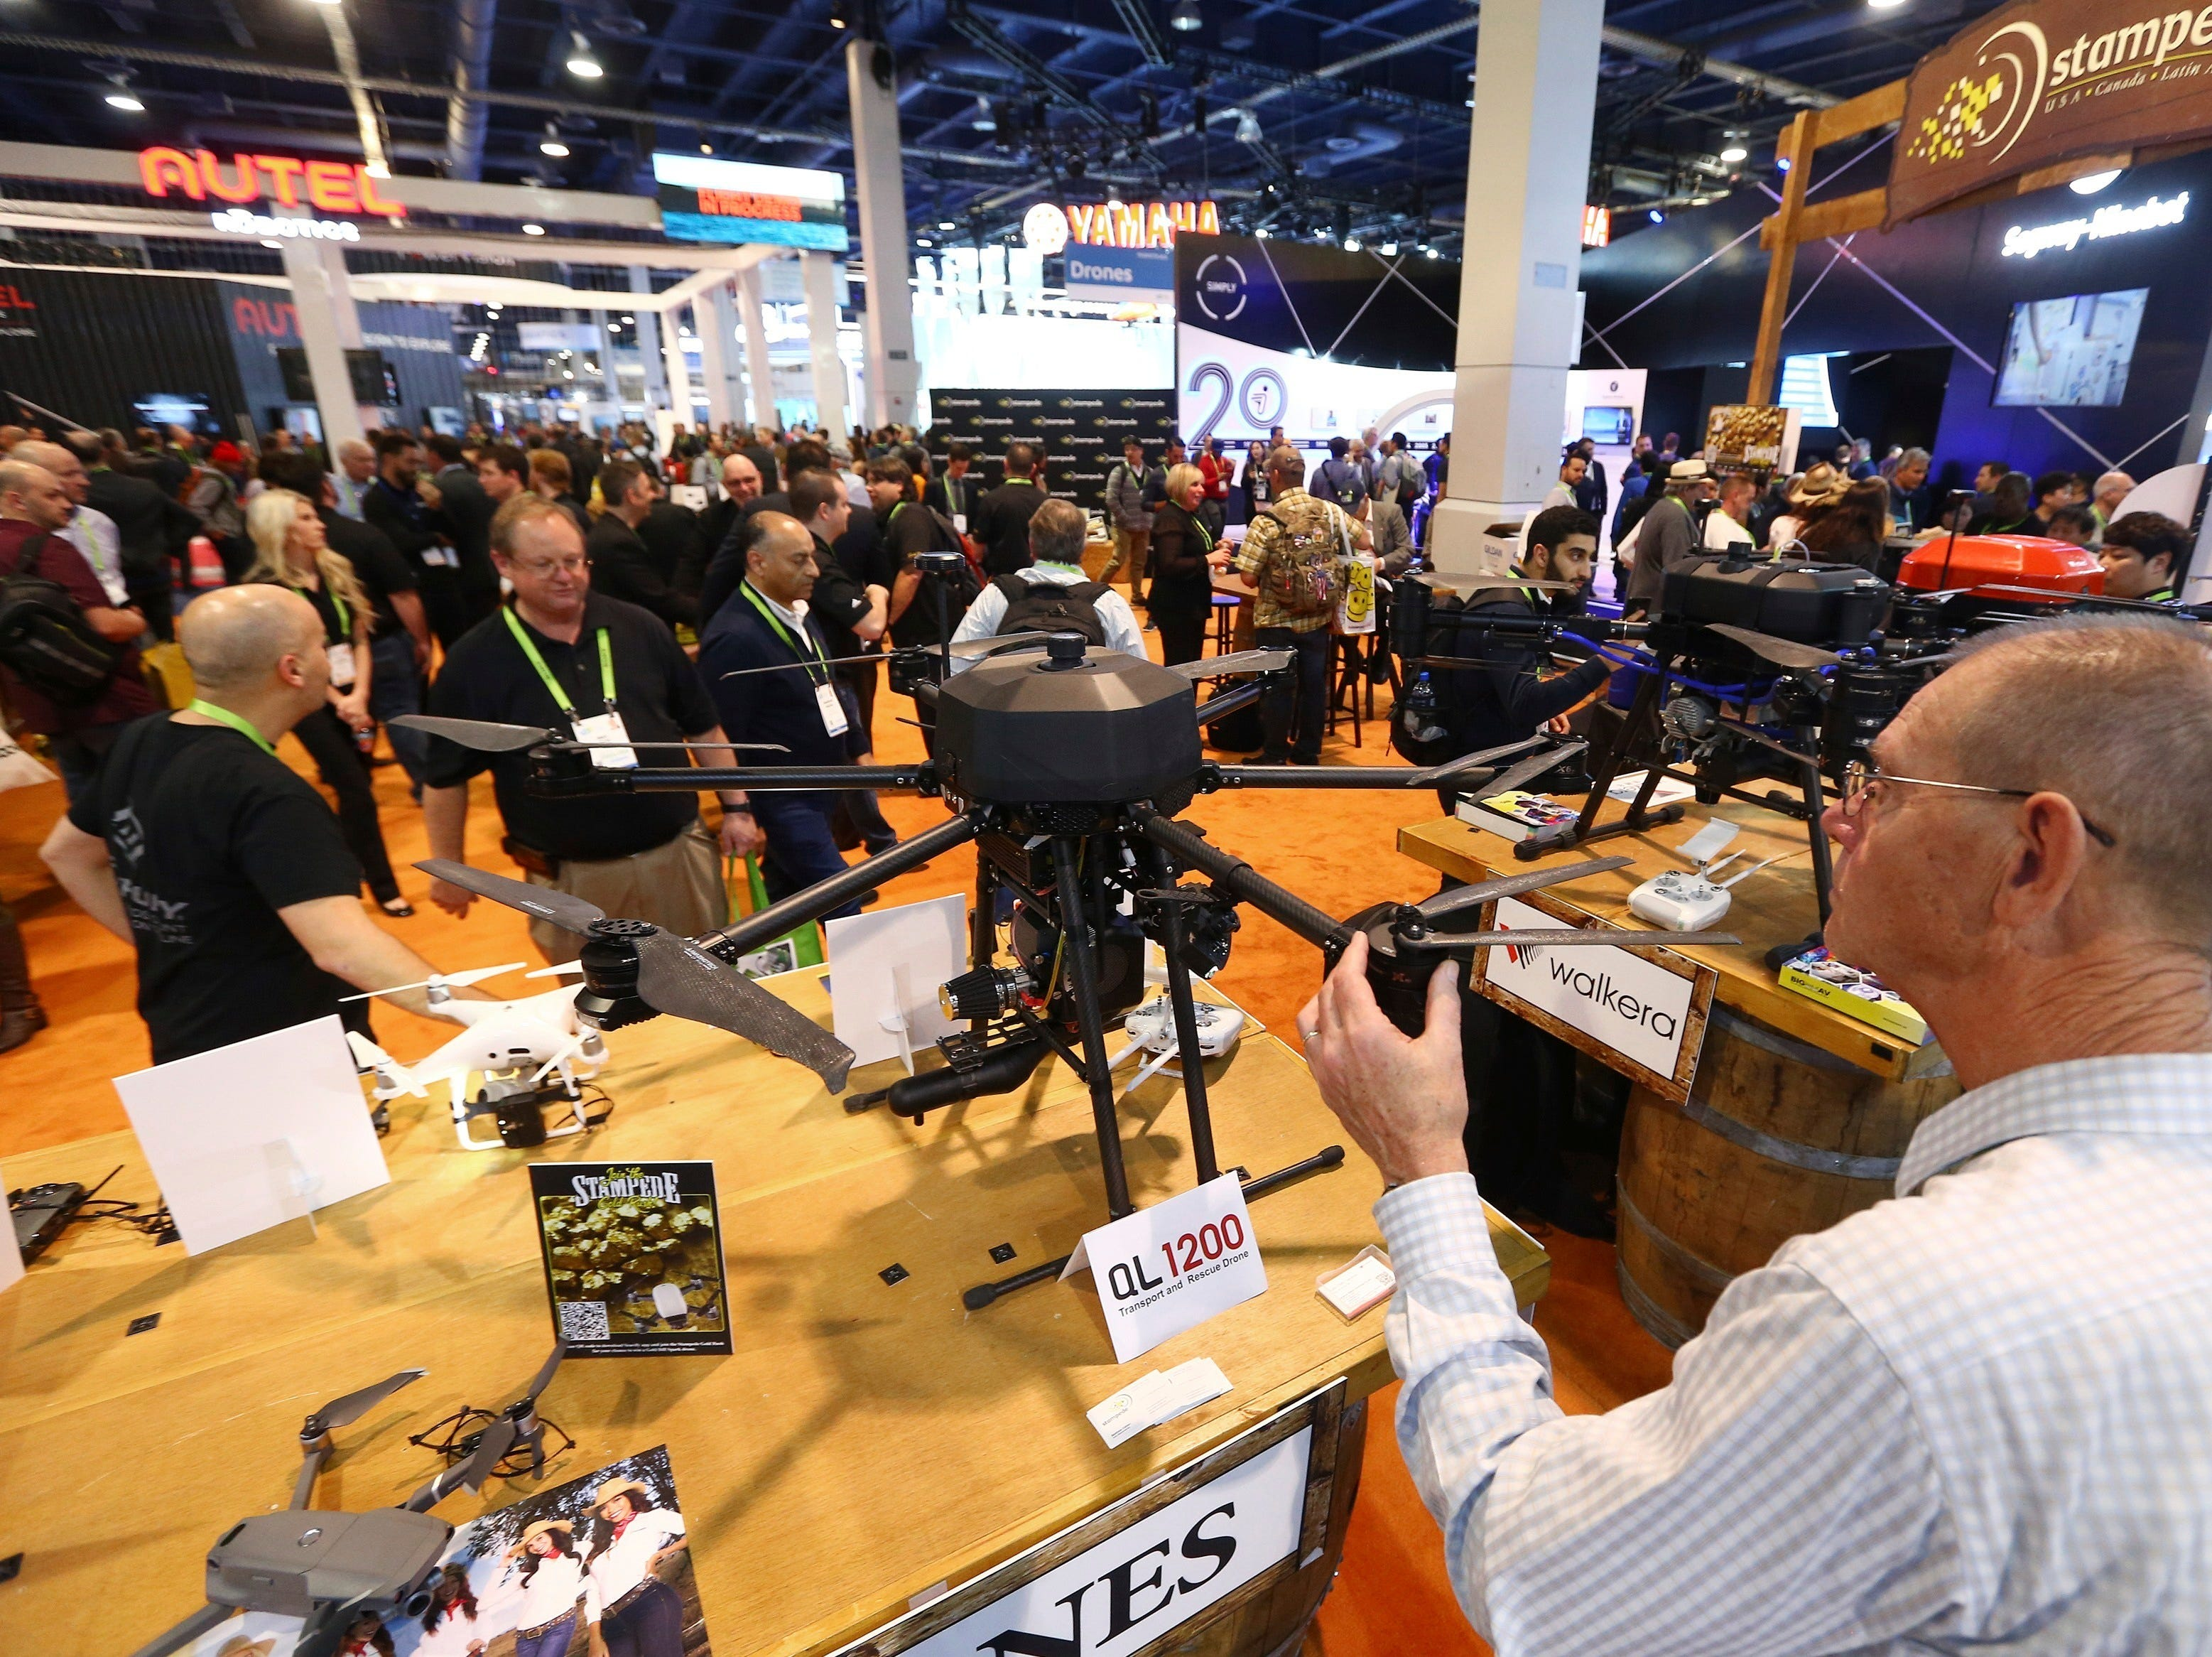 A CES attendee checks out a Walkera QL-1200 drone at CES International on Wednesday, Jan. 9, 2019, in Las Vegas.